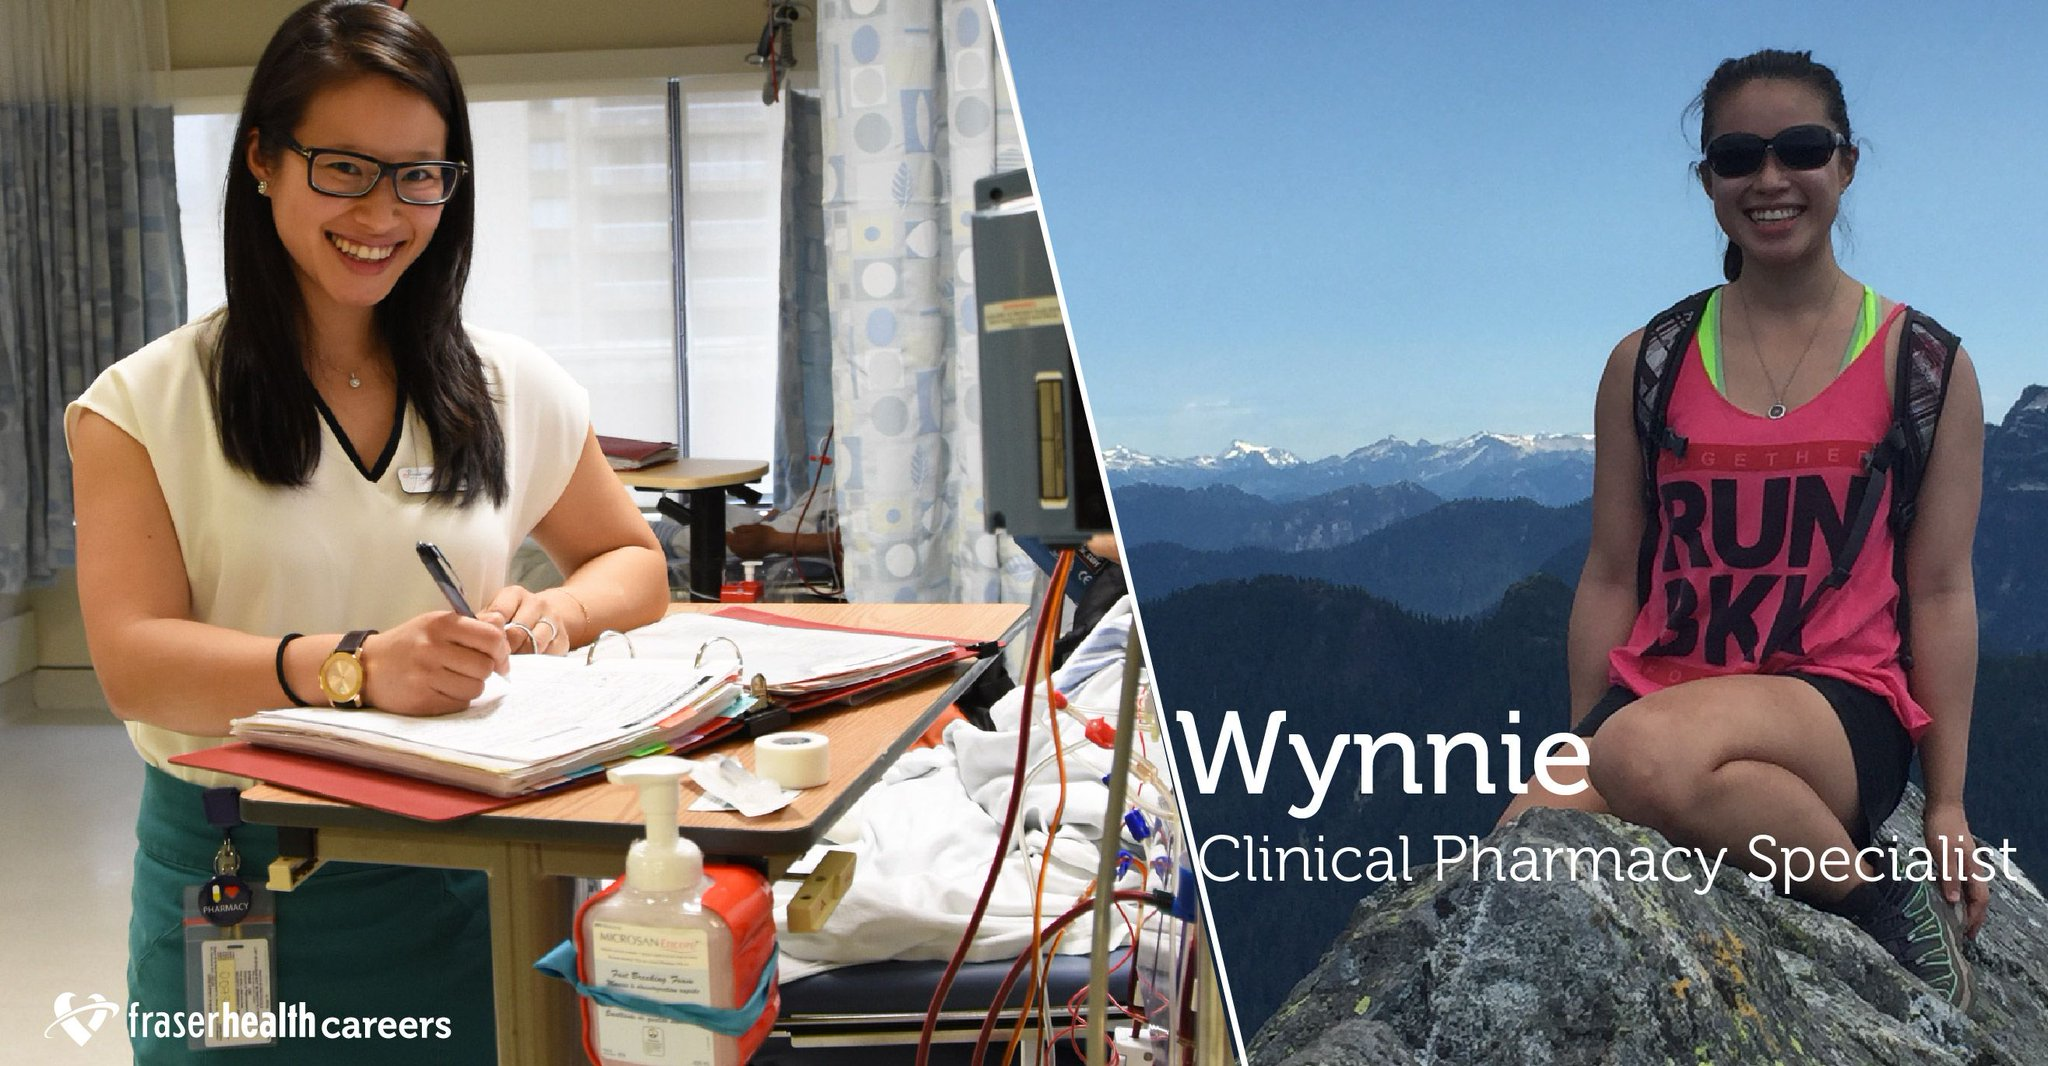 To wrap up #PAM2017, we'd like to thank pharmacy professionals for their valuable work & share Wynnie's inspiration https://t.co/Axn1Q1uNNL https://t.co/RX8aCRGog9